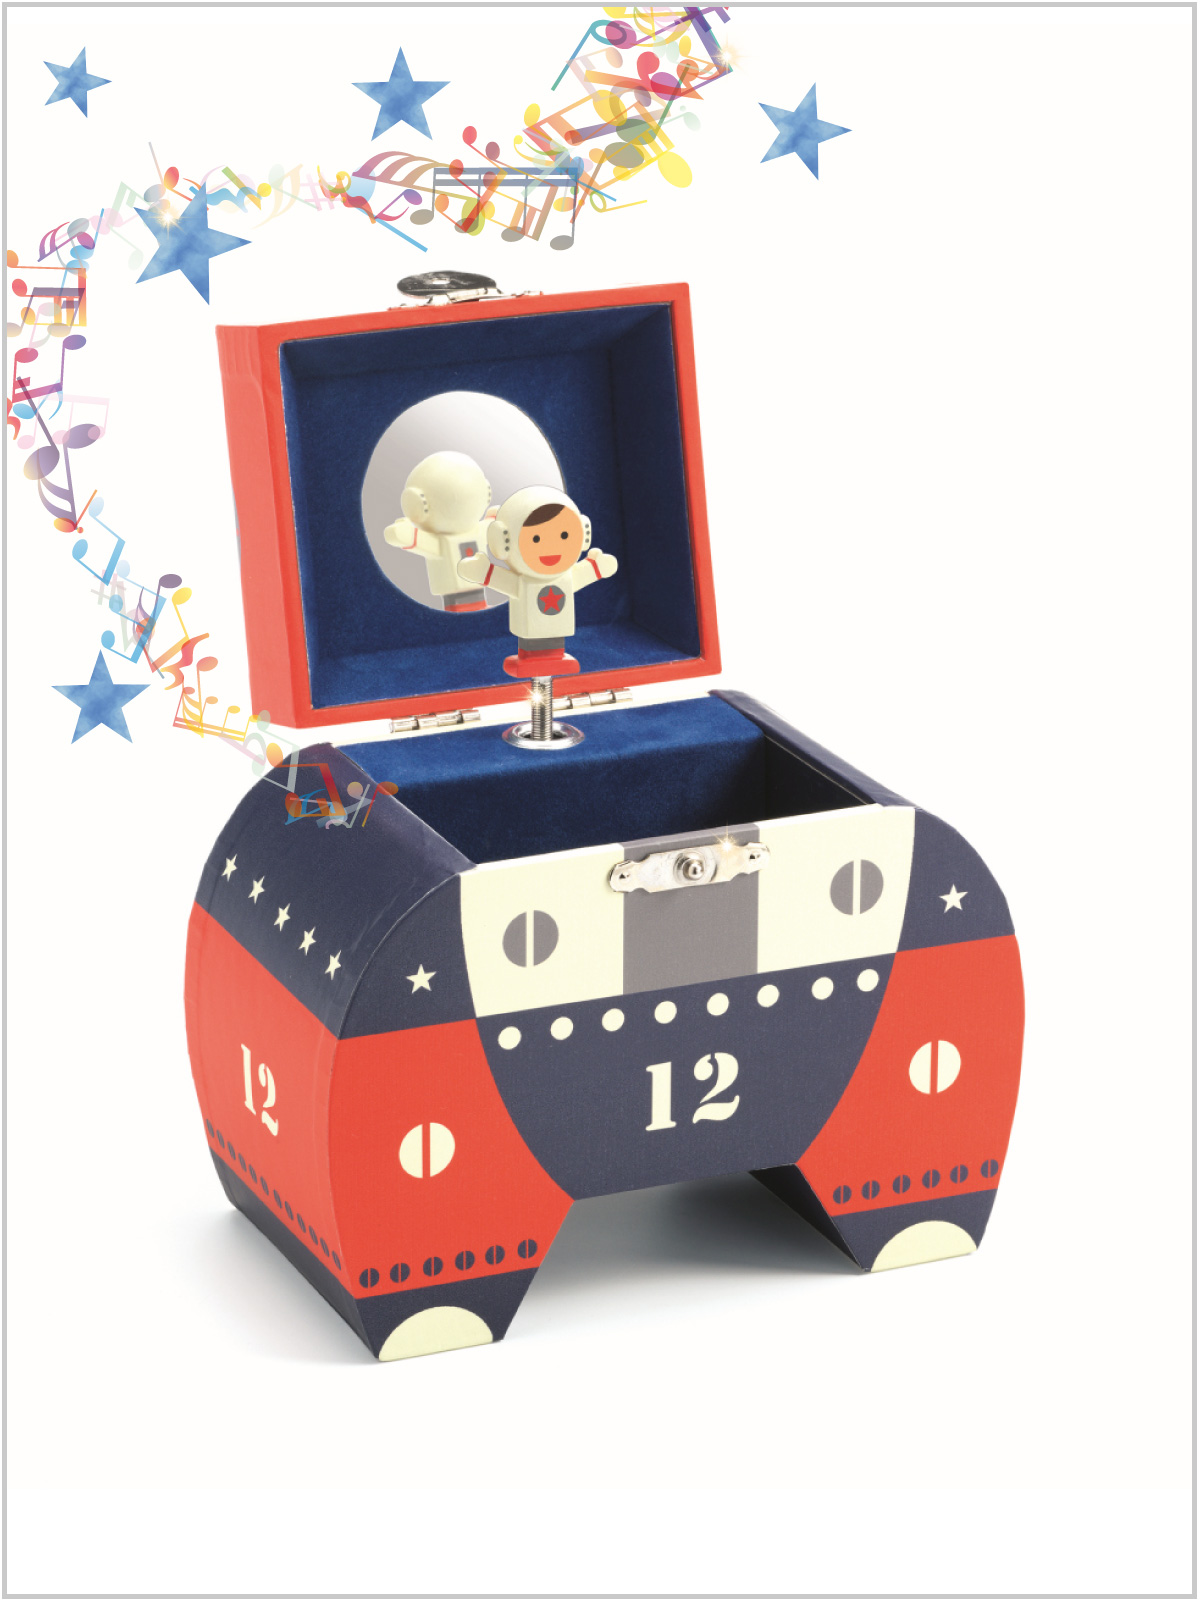 frederickandsophie-kids-toys-djeco-music-box-astronaut